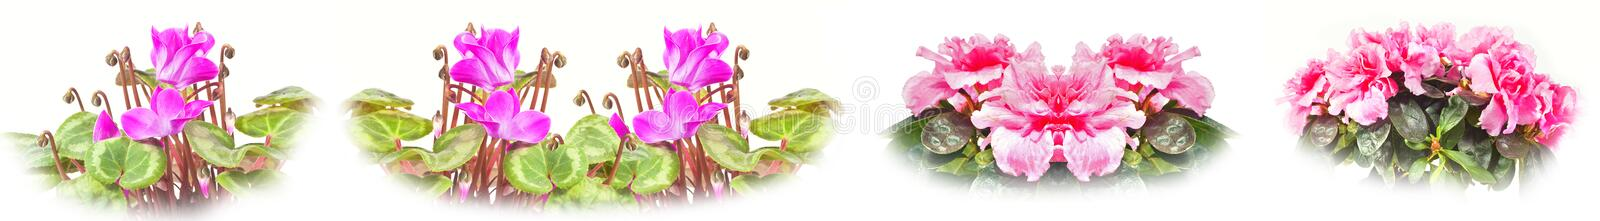 Azalea and Cyclomen. Collage royalty free stock photos